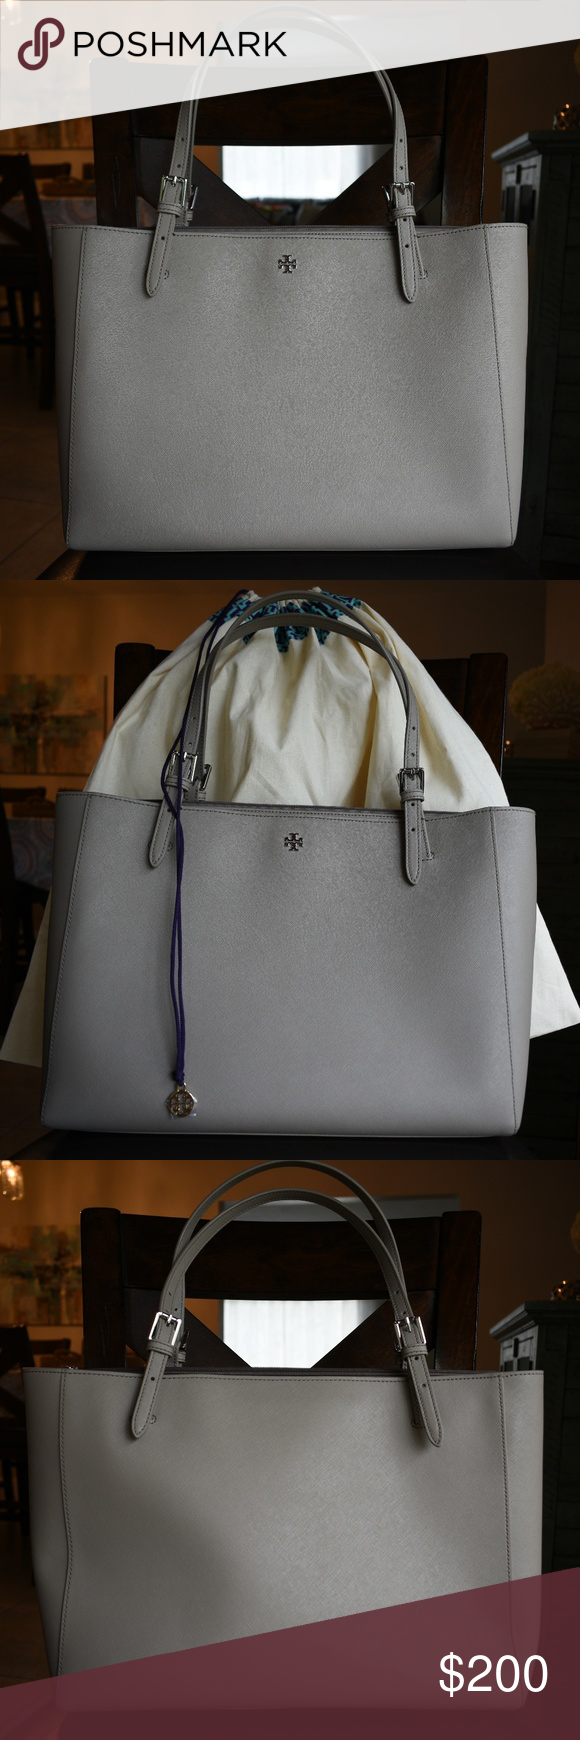 Tory Burch Large York Tote Saffiano Leather Gray Interior French Bag